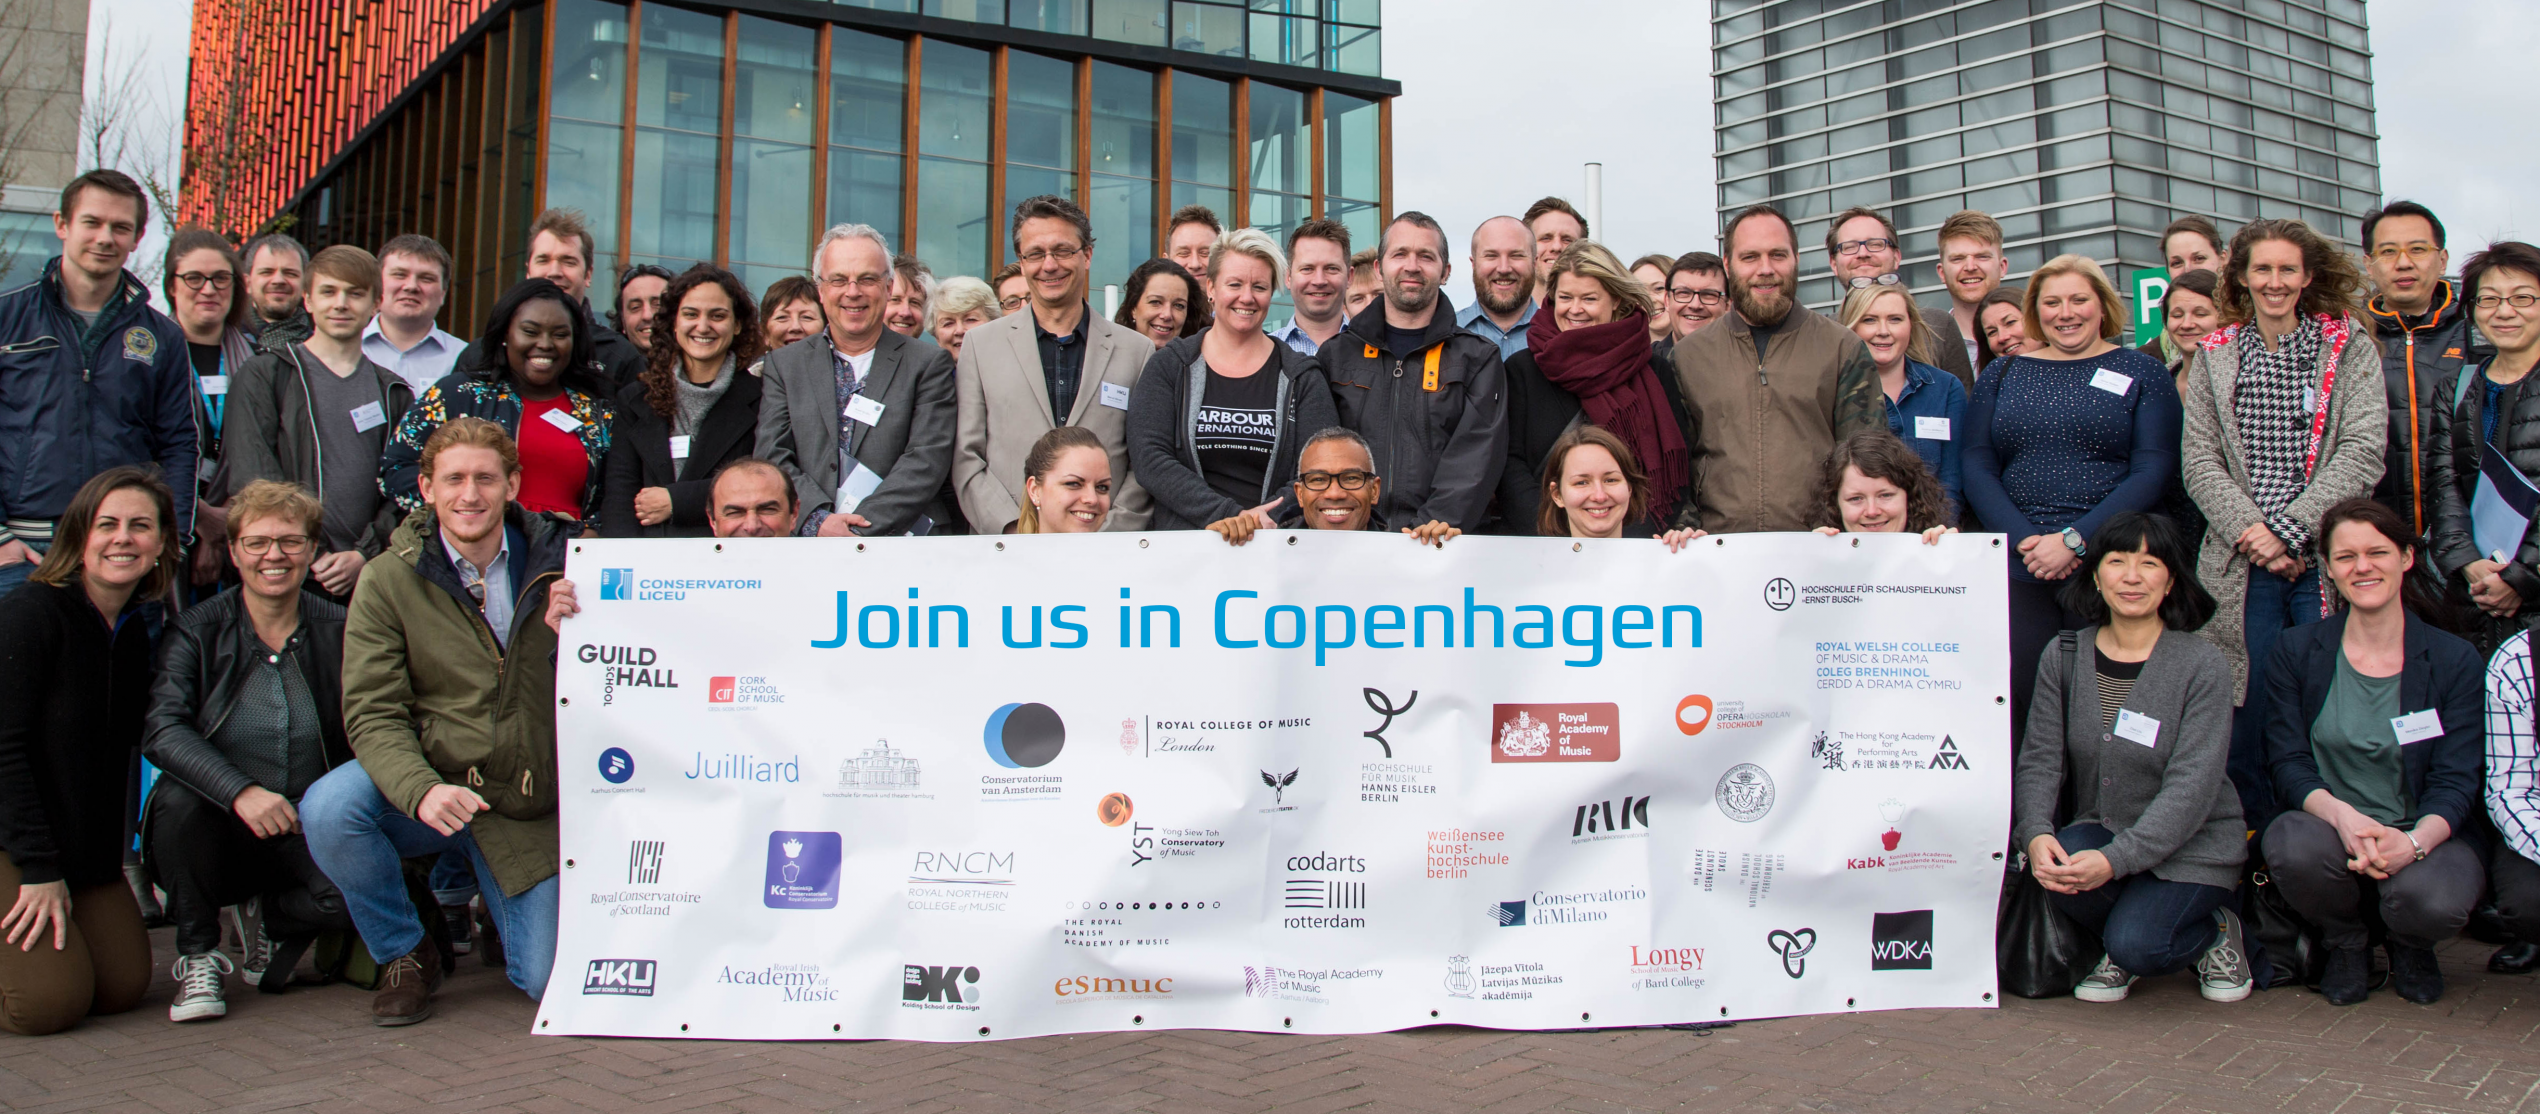 join-us-in-copenhagen